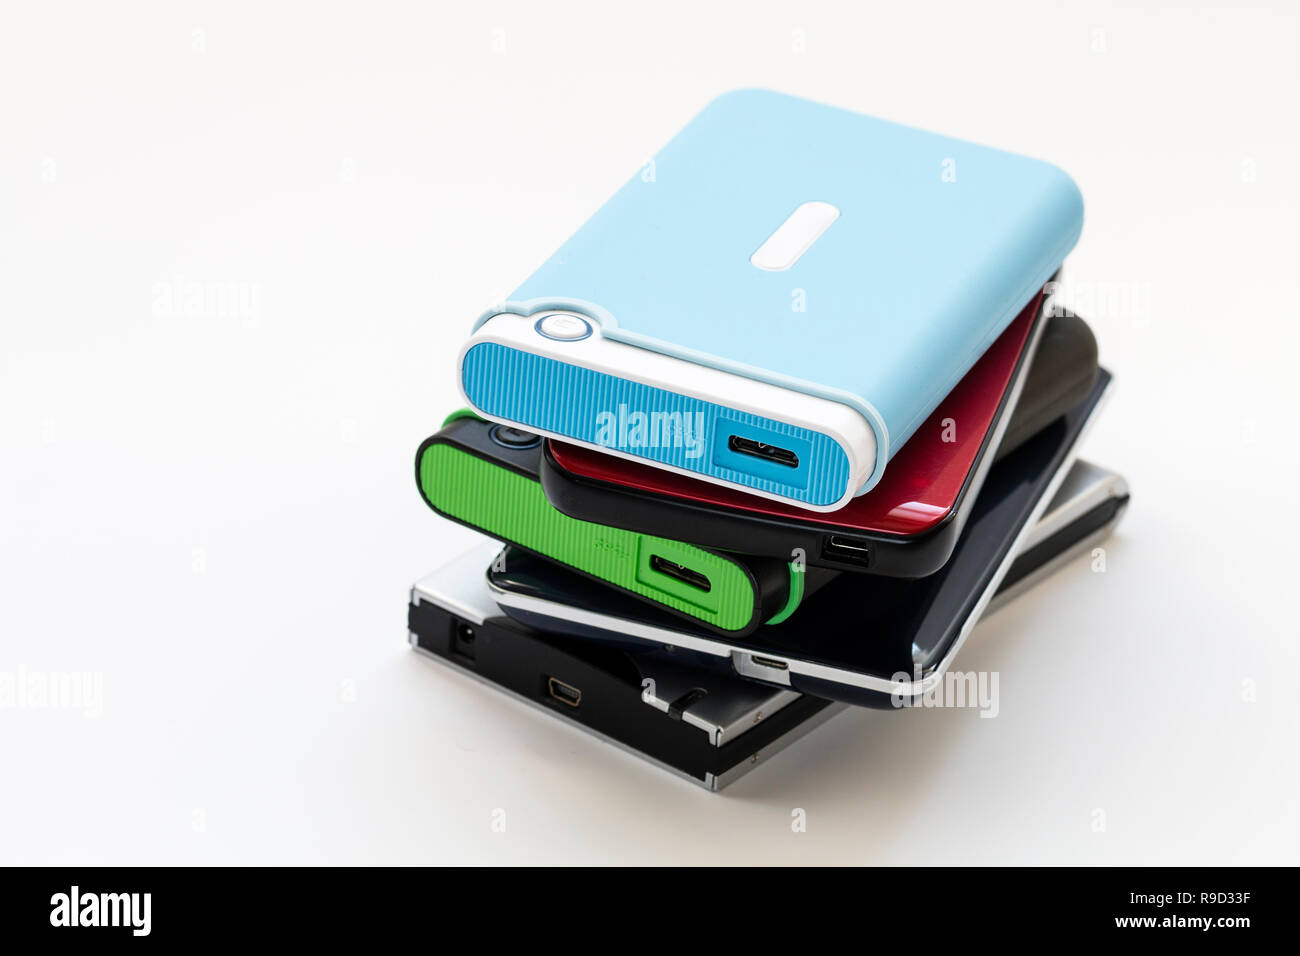 Stack of five different types of portable external hard drives with USB connection socket on end. Generic no name. Deep focus. Plain white background. - Stock Image